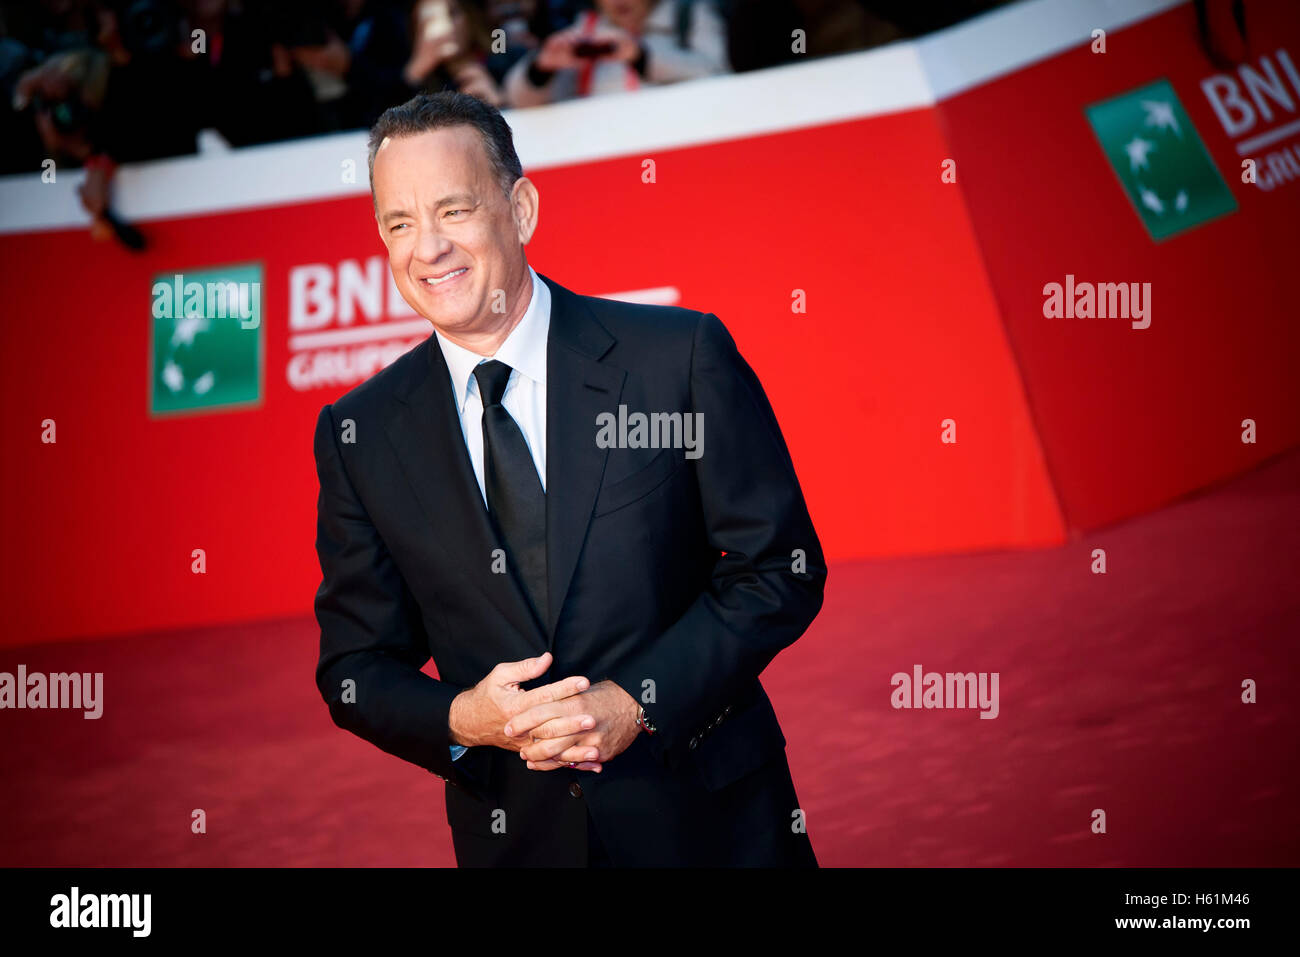 Tom Hanks attends the red carpet during the Rome Film Fest 2016 - Stock Image